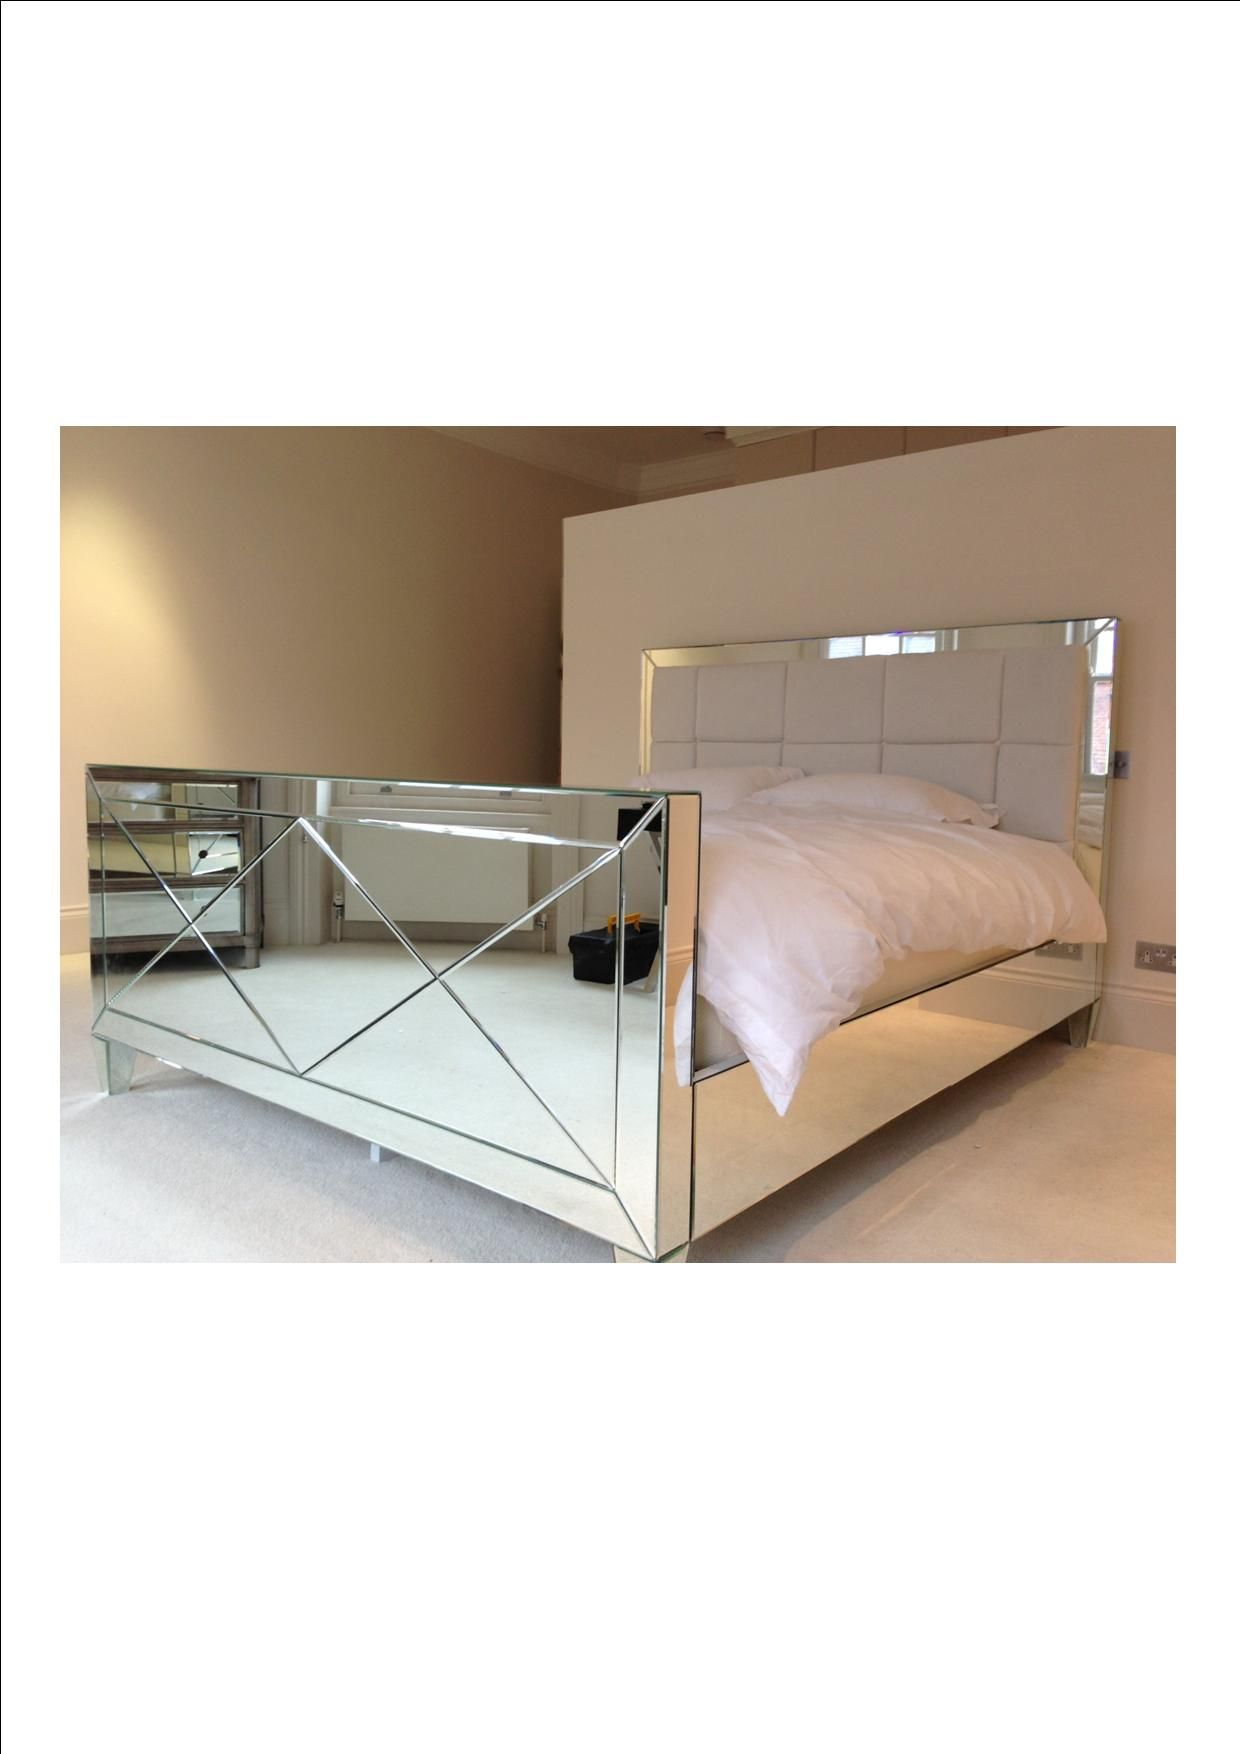 Contemporary Mirrored Bed Frame With Bed Design Ideas With Mirrored Headboard And Mirrored Bed Frame Also Bedding Bed Design Bed Headboard Design Bed Furniture